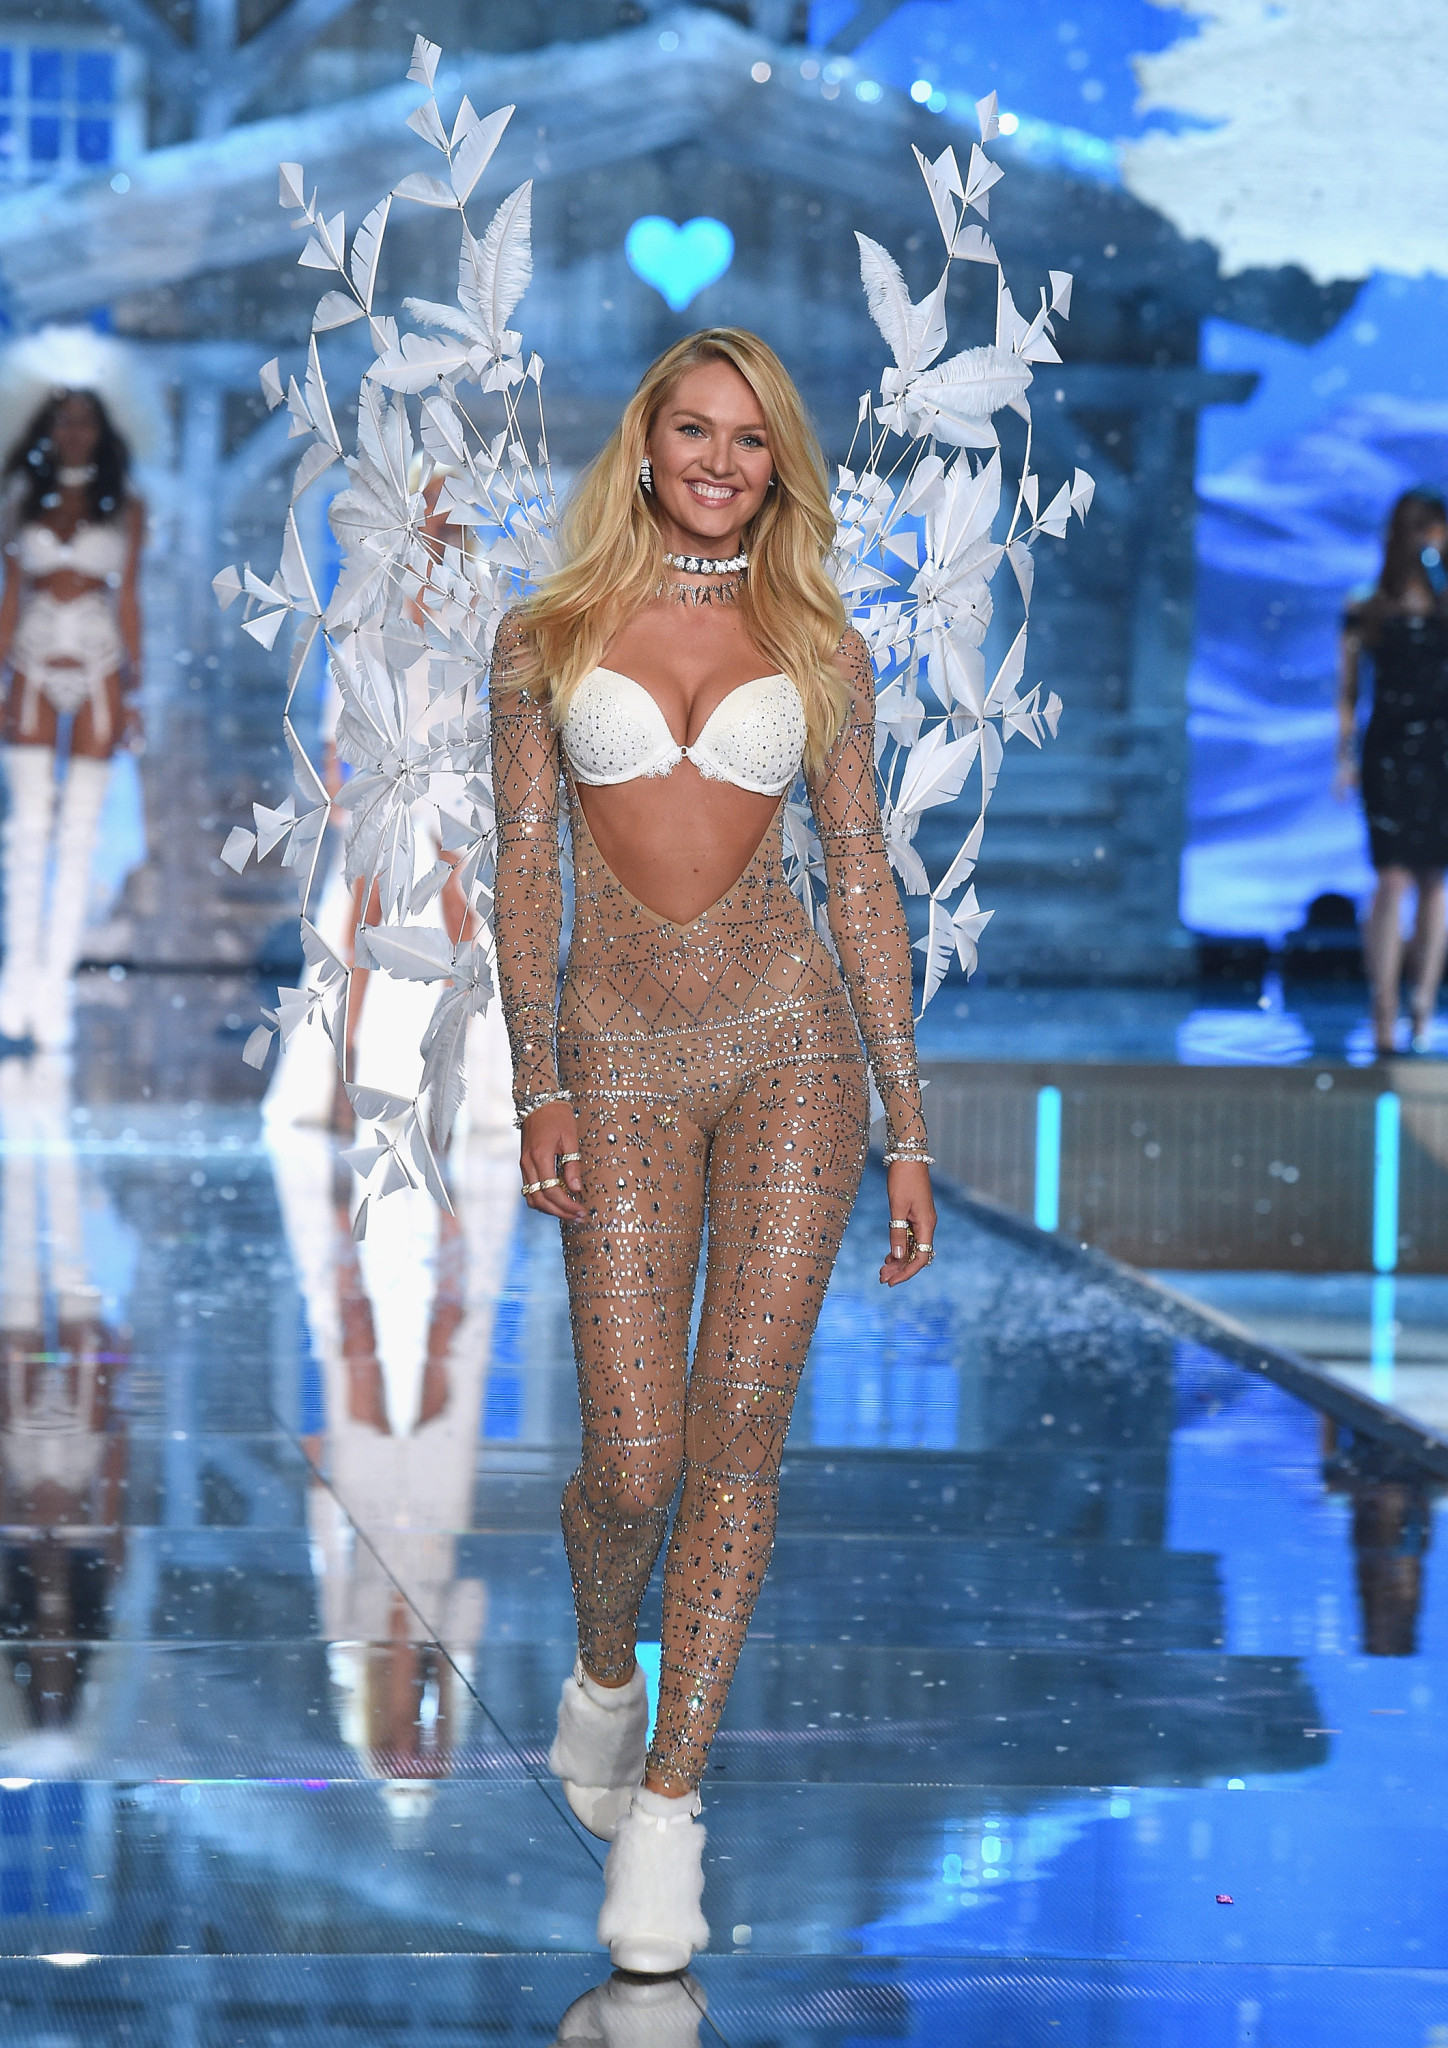 NEW YORK, NY - NOVEMBER 10: Model and Victoria's Secret Angel Candice Swanepoel from South Africa walks the runway during the 2015 Victoria's Secret Fashion Show at Lexington Avenue Armory on November 10, 2015 in New York City. (Photo by Dimitrios Kambouris/Getty Images for Victoria's Secret) *** Local Caption *** Candice Swanepoel